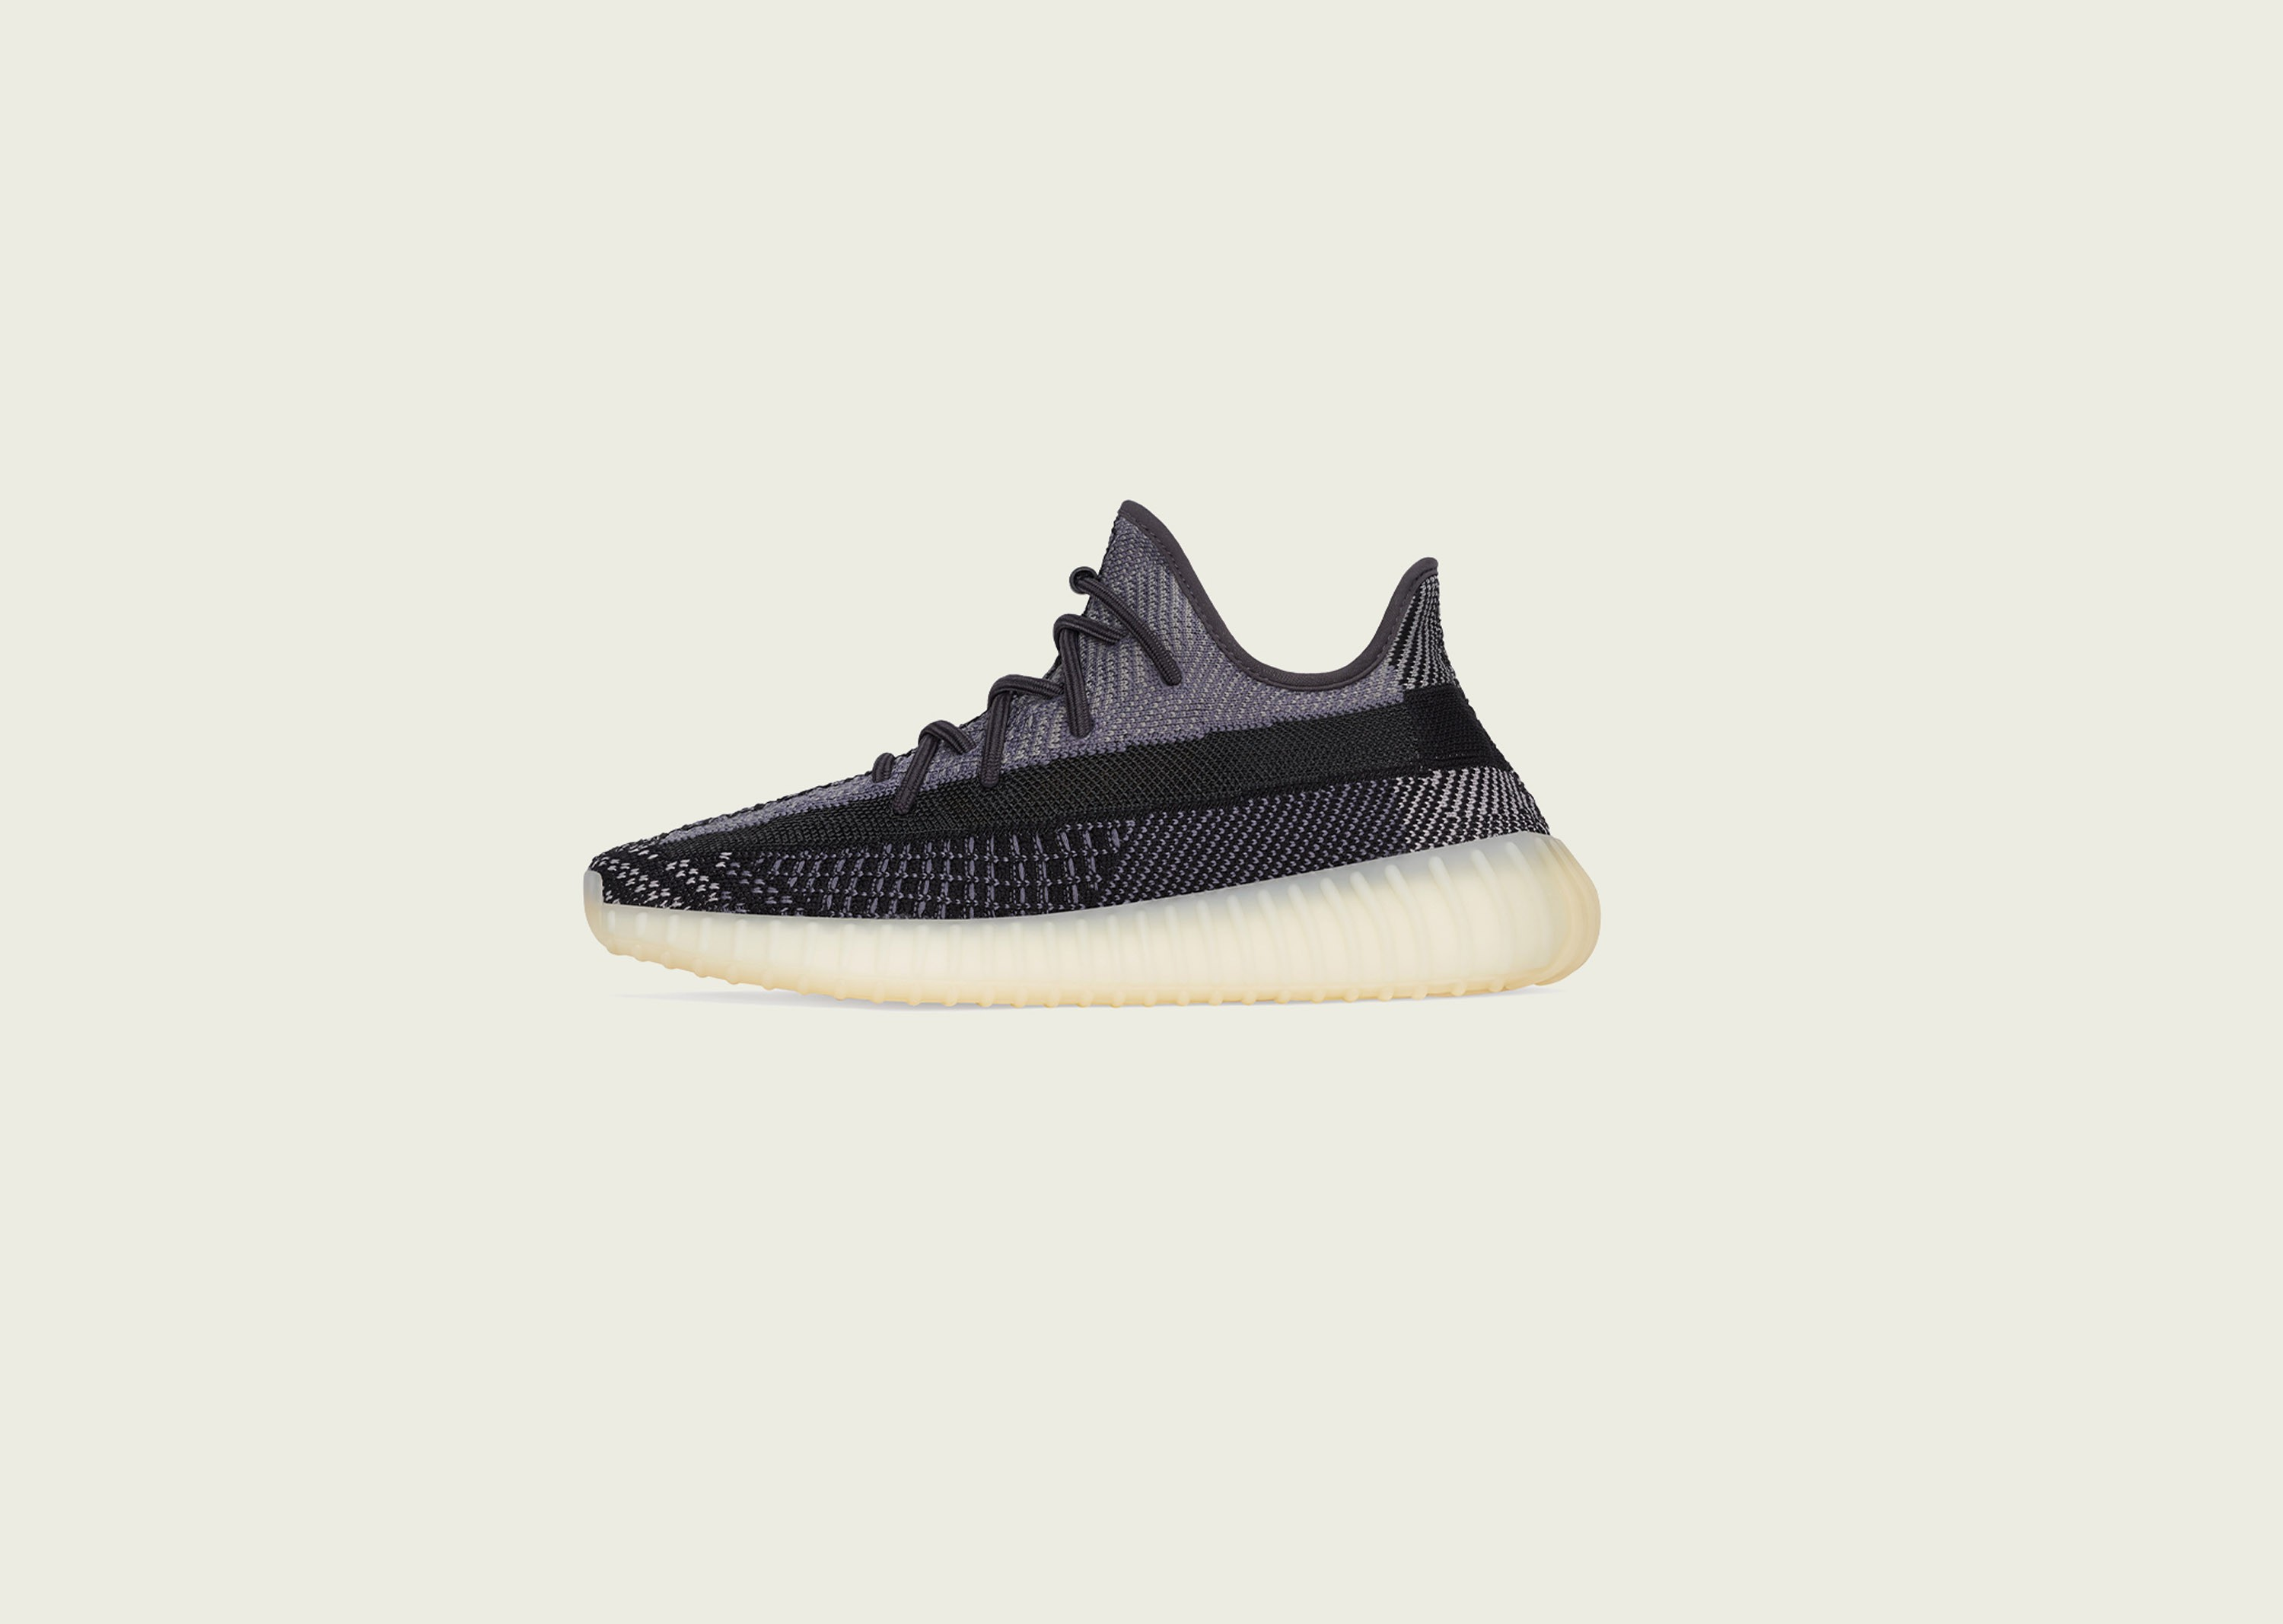 yeezy_350_carbon_blog_0002_YEEZY_BOOST_350_V2_CARBON_Left_Social_IG_1200x1200